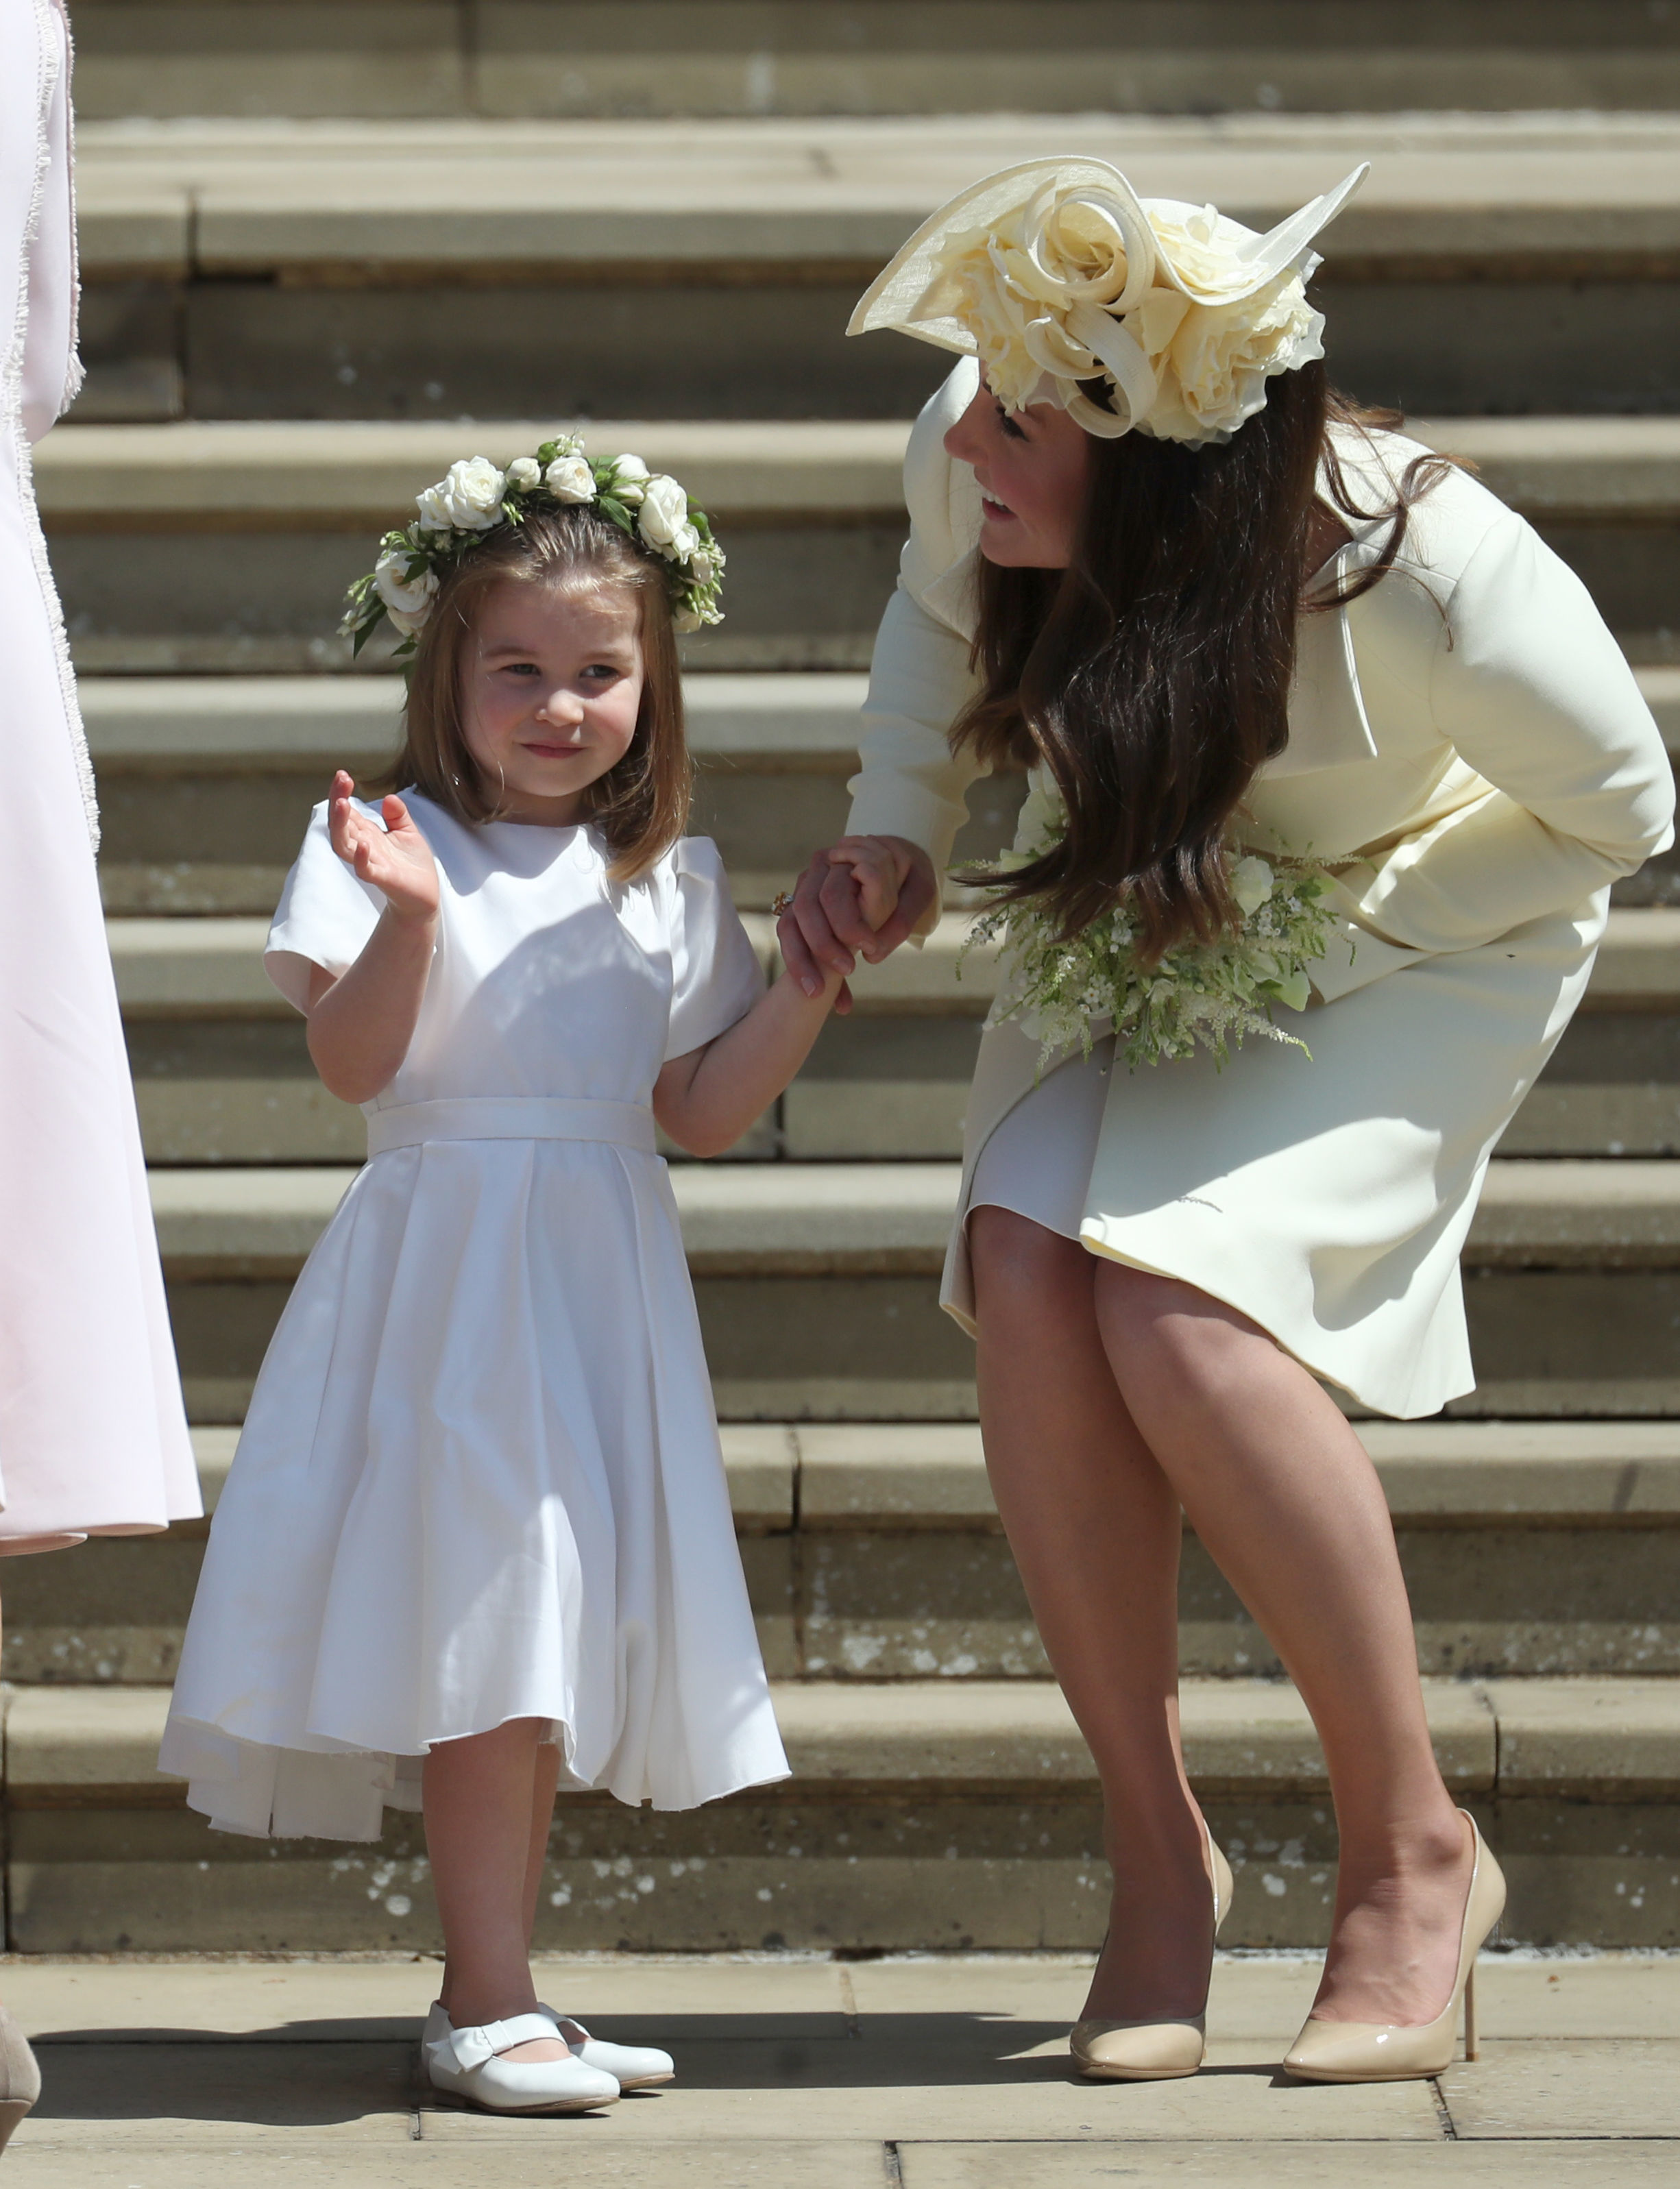 Princess Charlotte and Catherine, Duchess of Cambridge leave St George's Chapel after the wedding of Prince Harry and Meghan Markle in St George's Chapel at Windsor Castle on May 19, 2018 in Windsor, England.